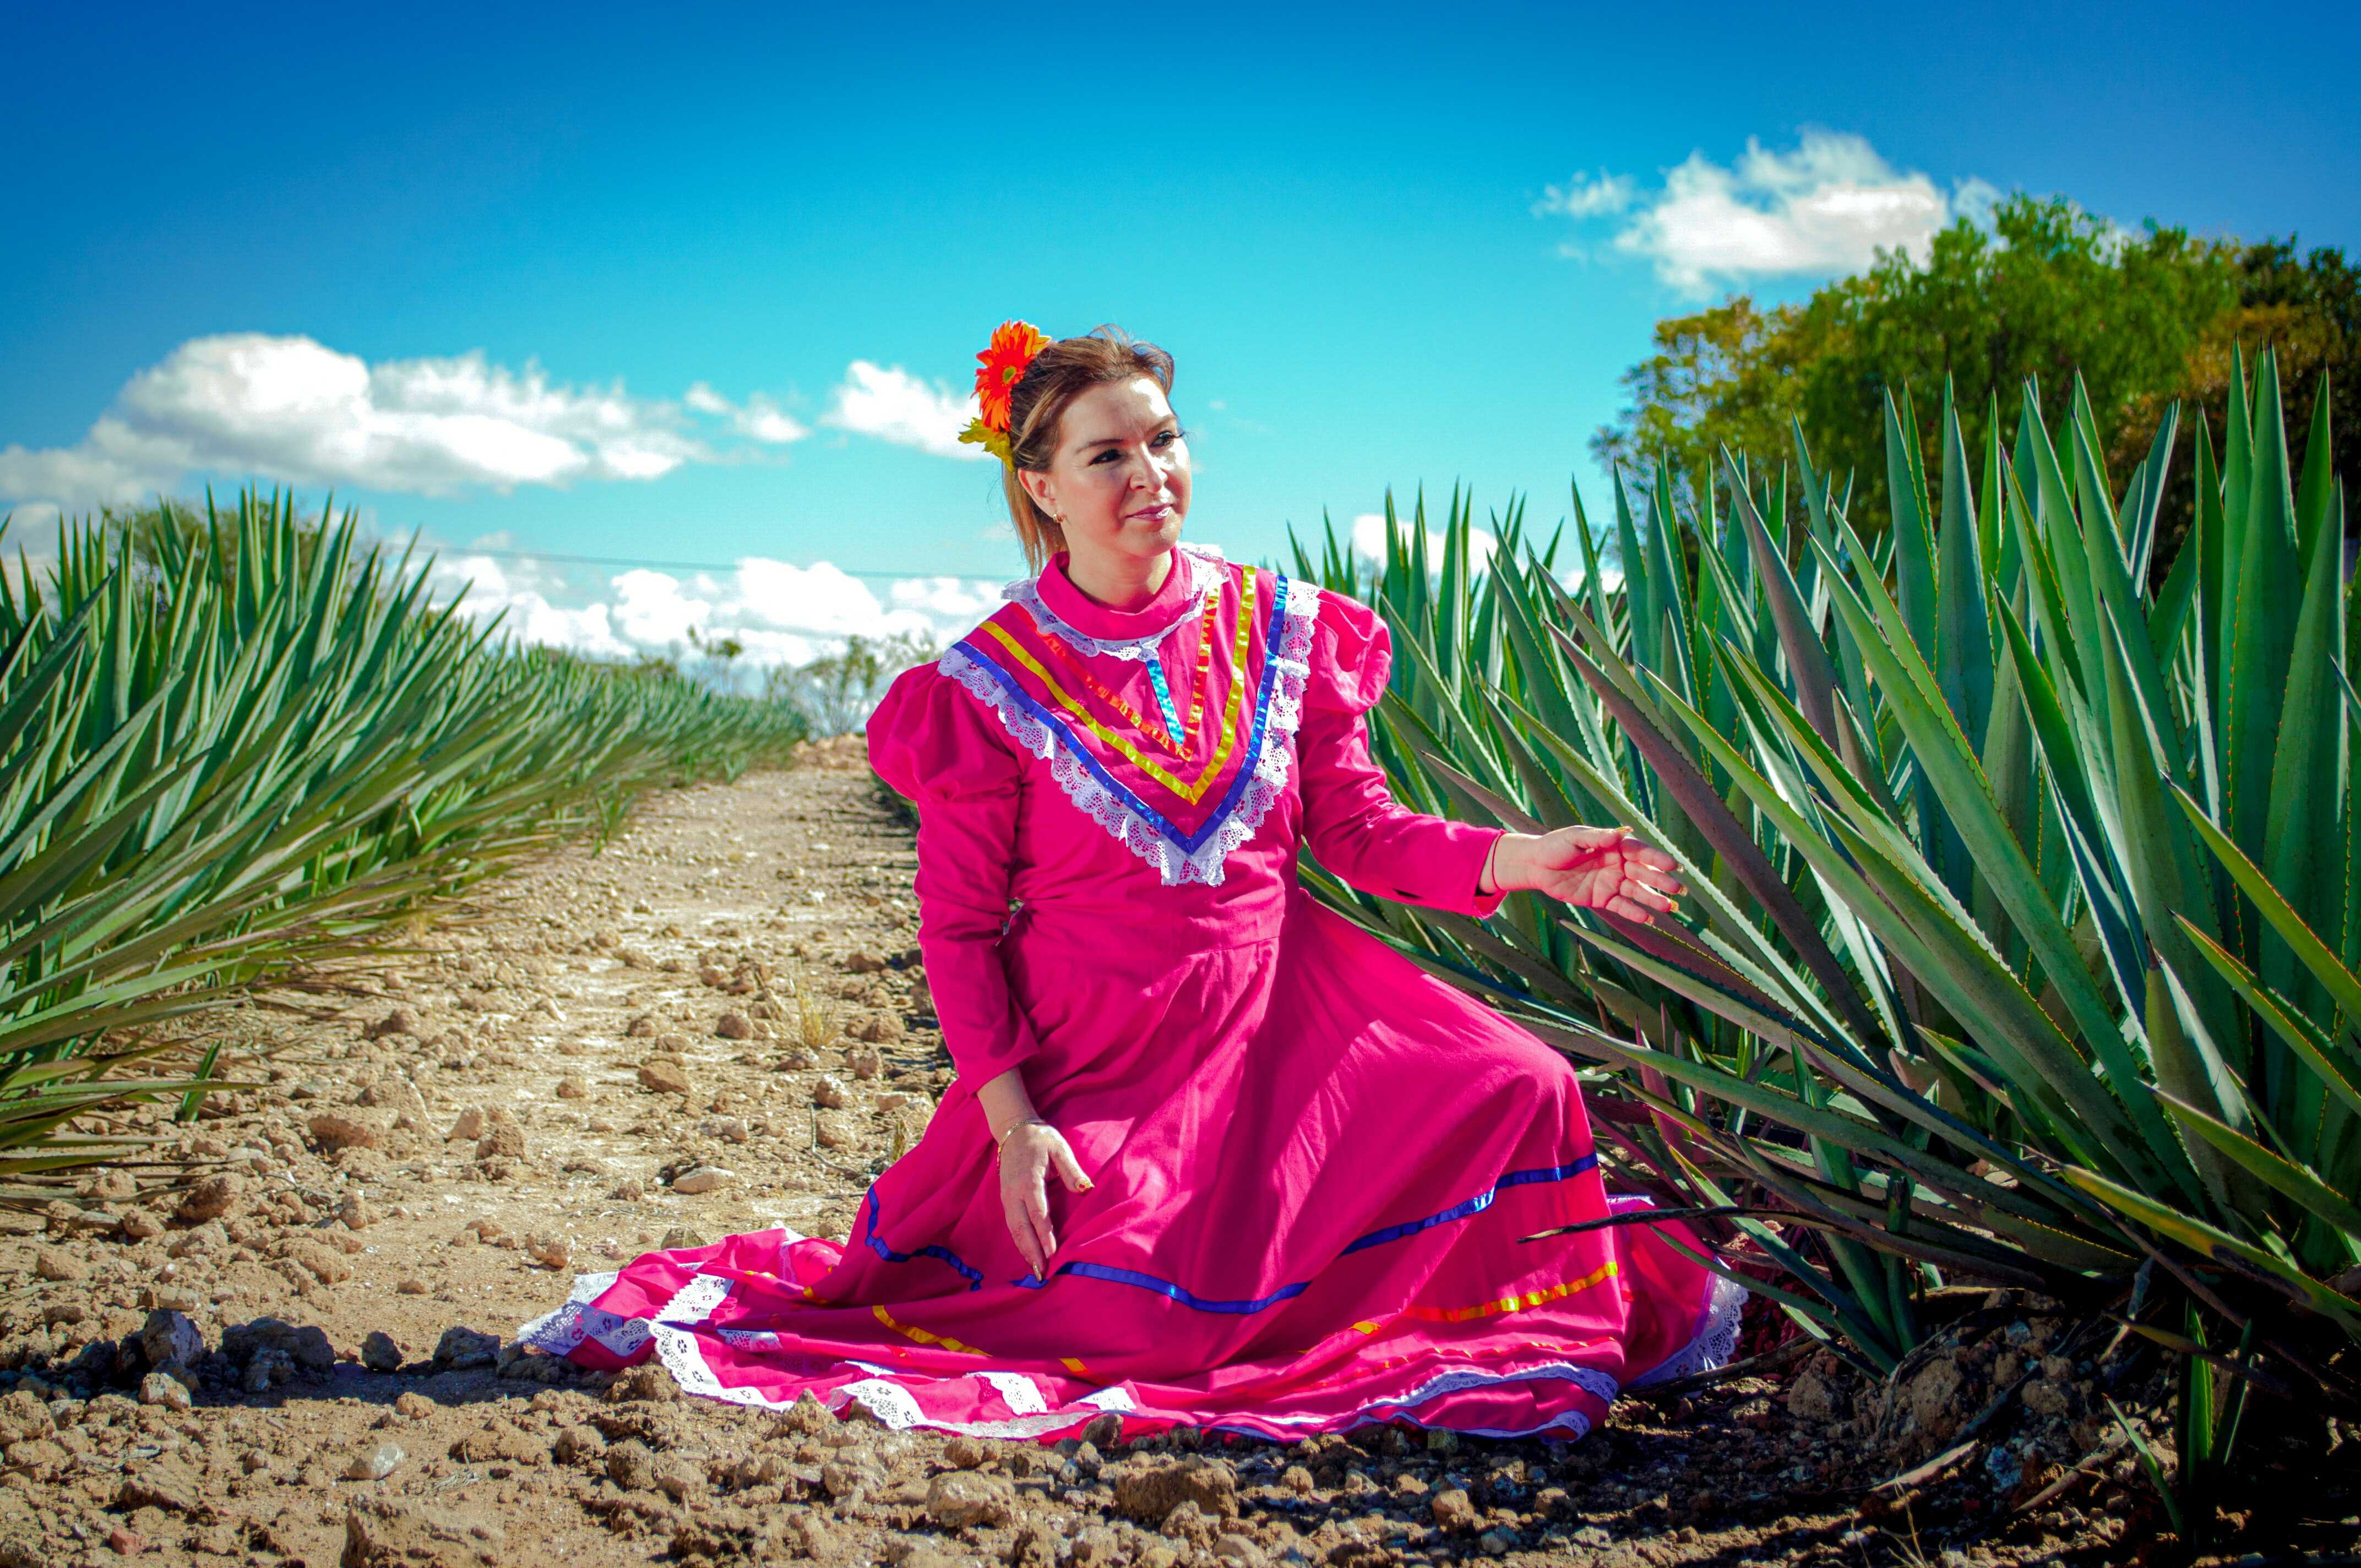 a farmer woman wears a pink color in among grasses